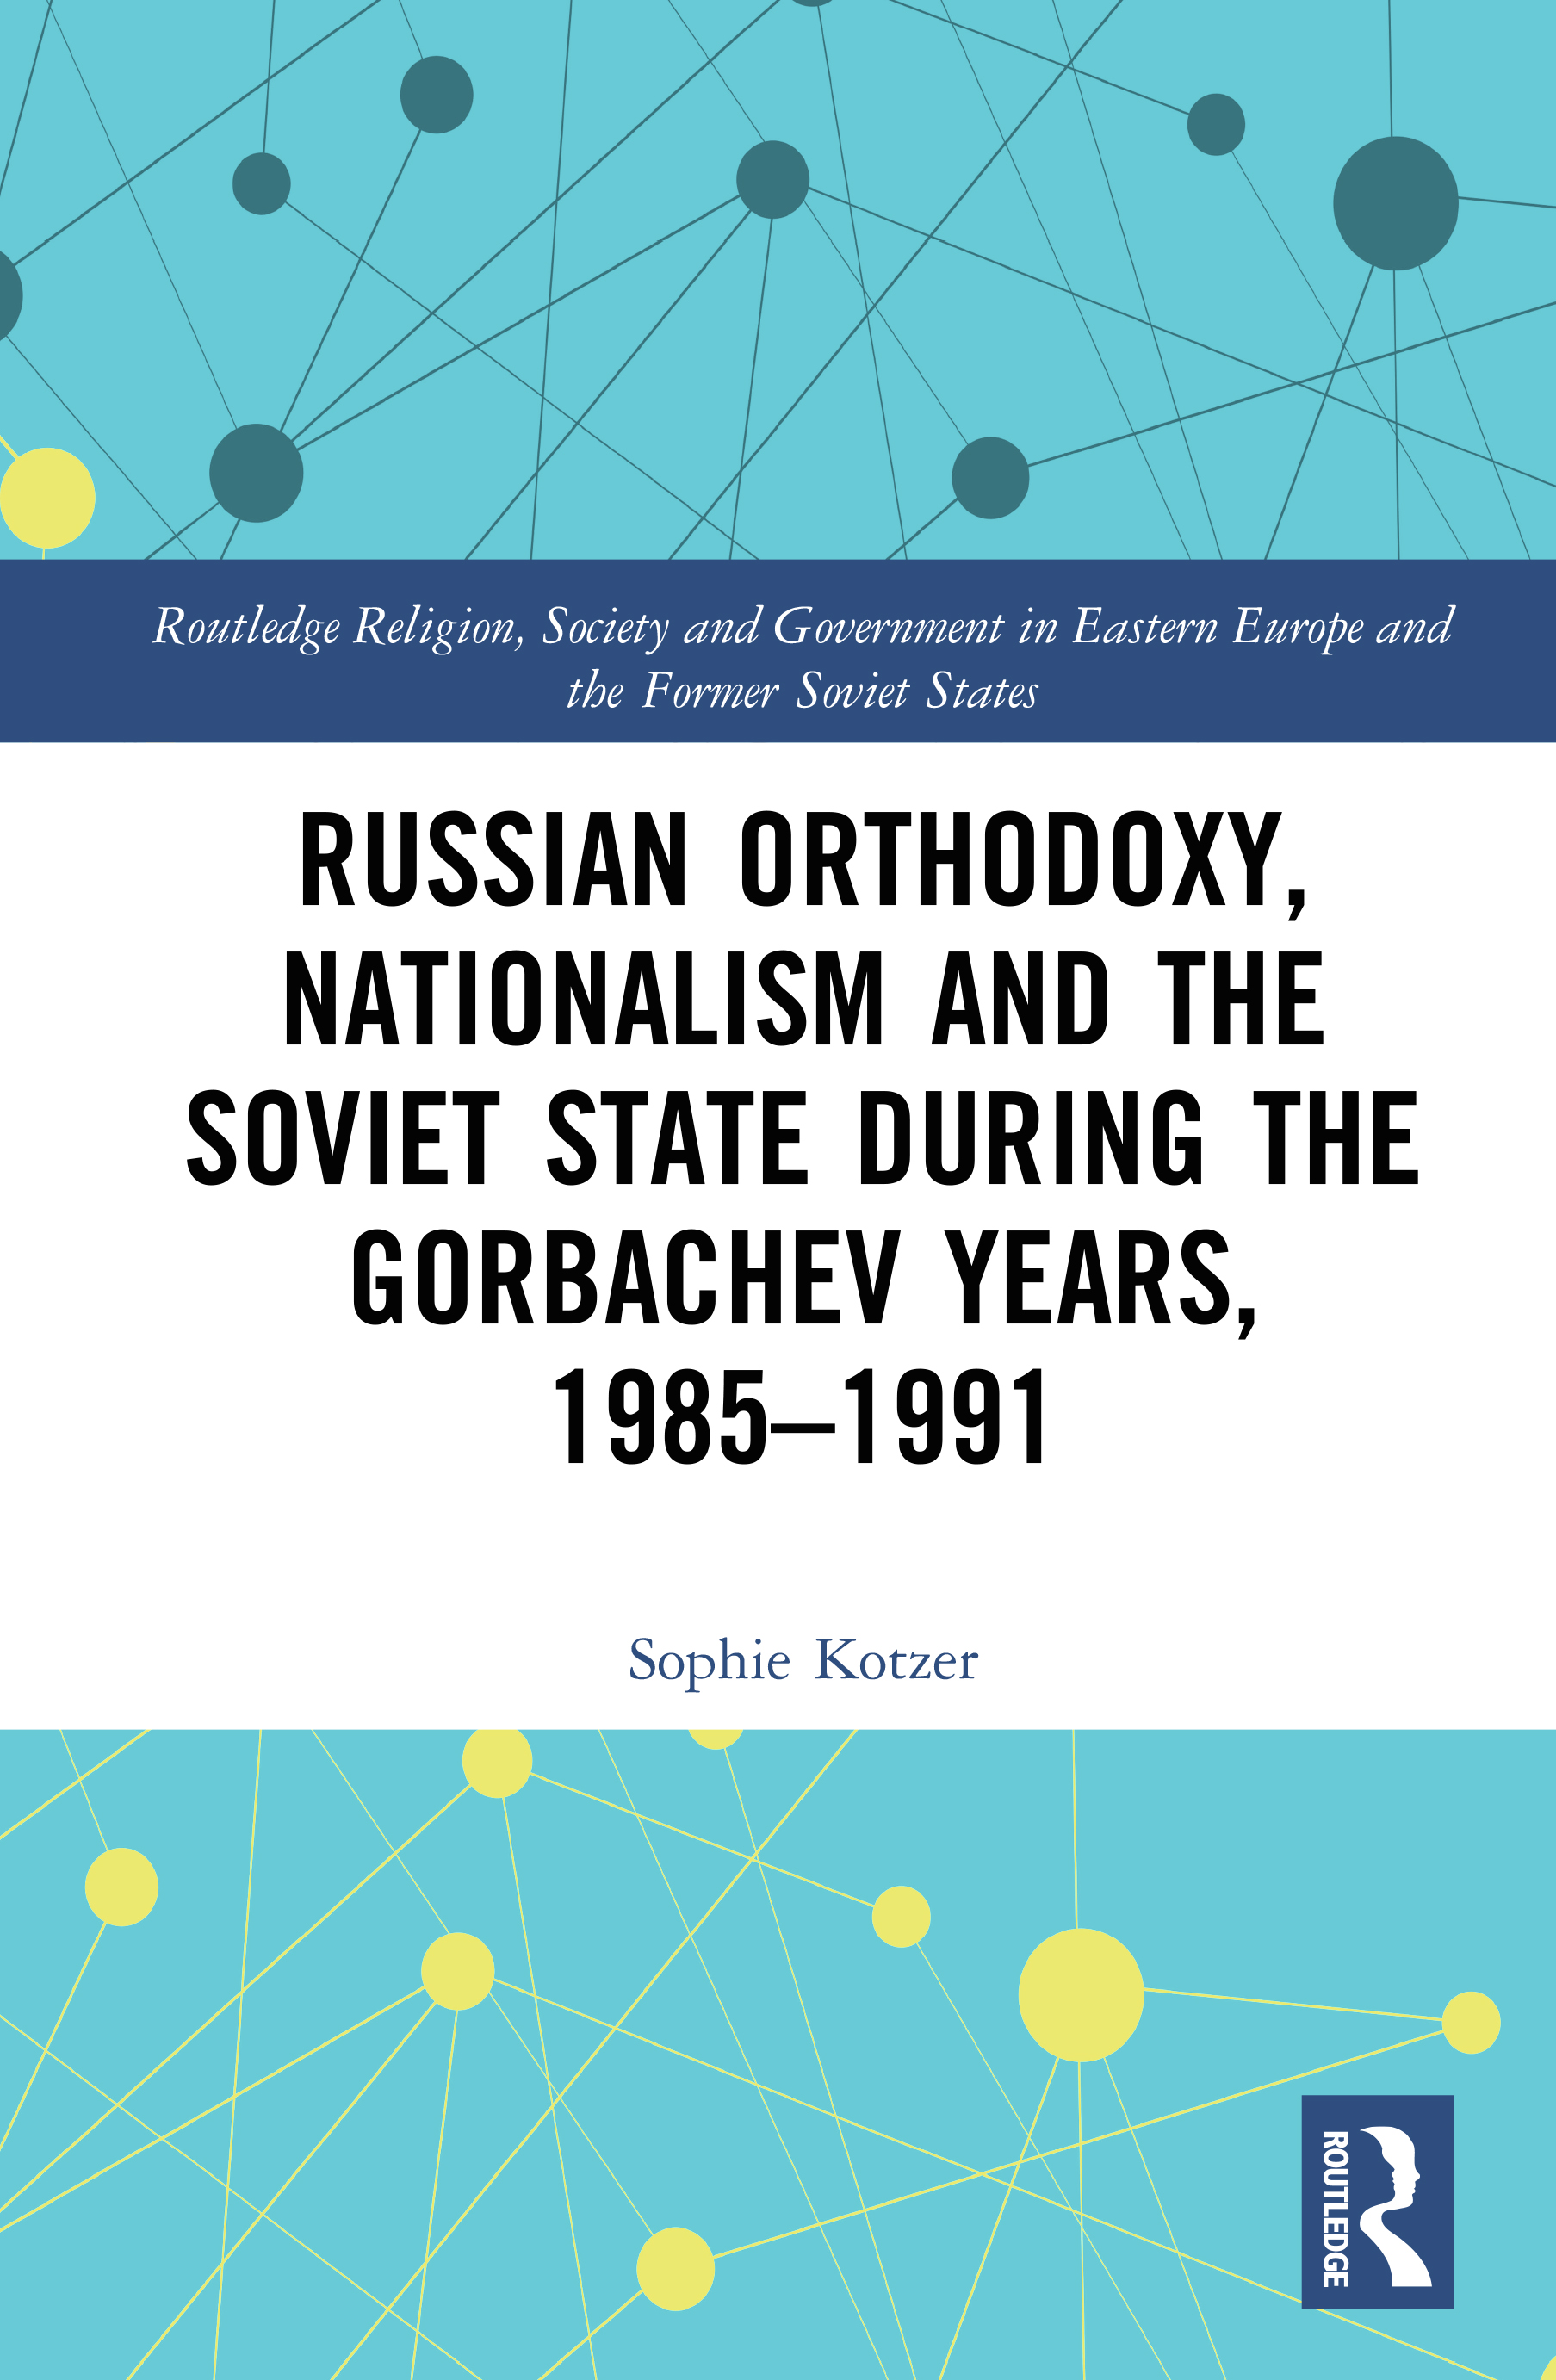 Russian Orthodoxy, Nationalism and the Soviet State during the Gorbachev Years, 1985-1991 book cover